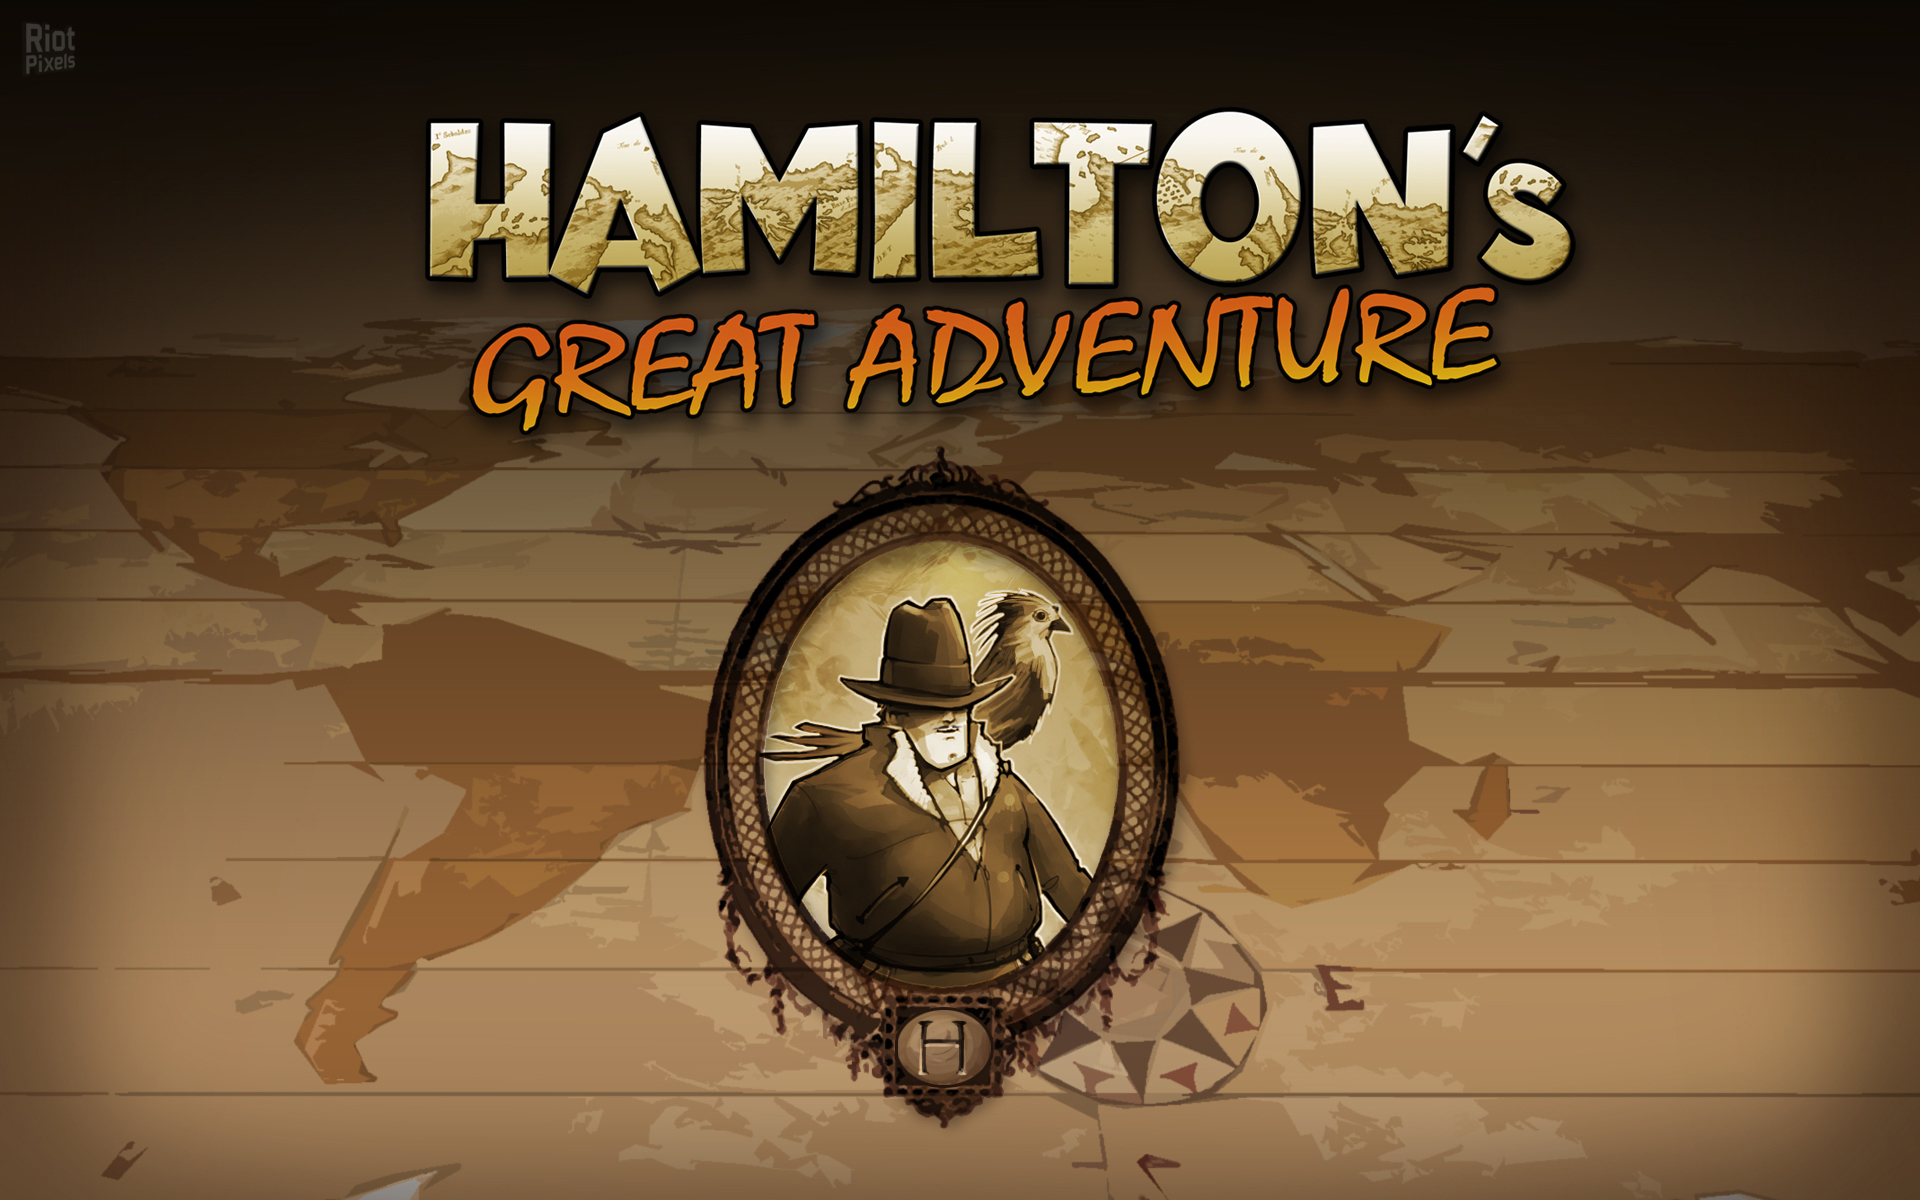 Getting started at a quick glance, my first impression of hamilton 2019s great adventure was that it was the first of